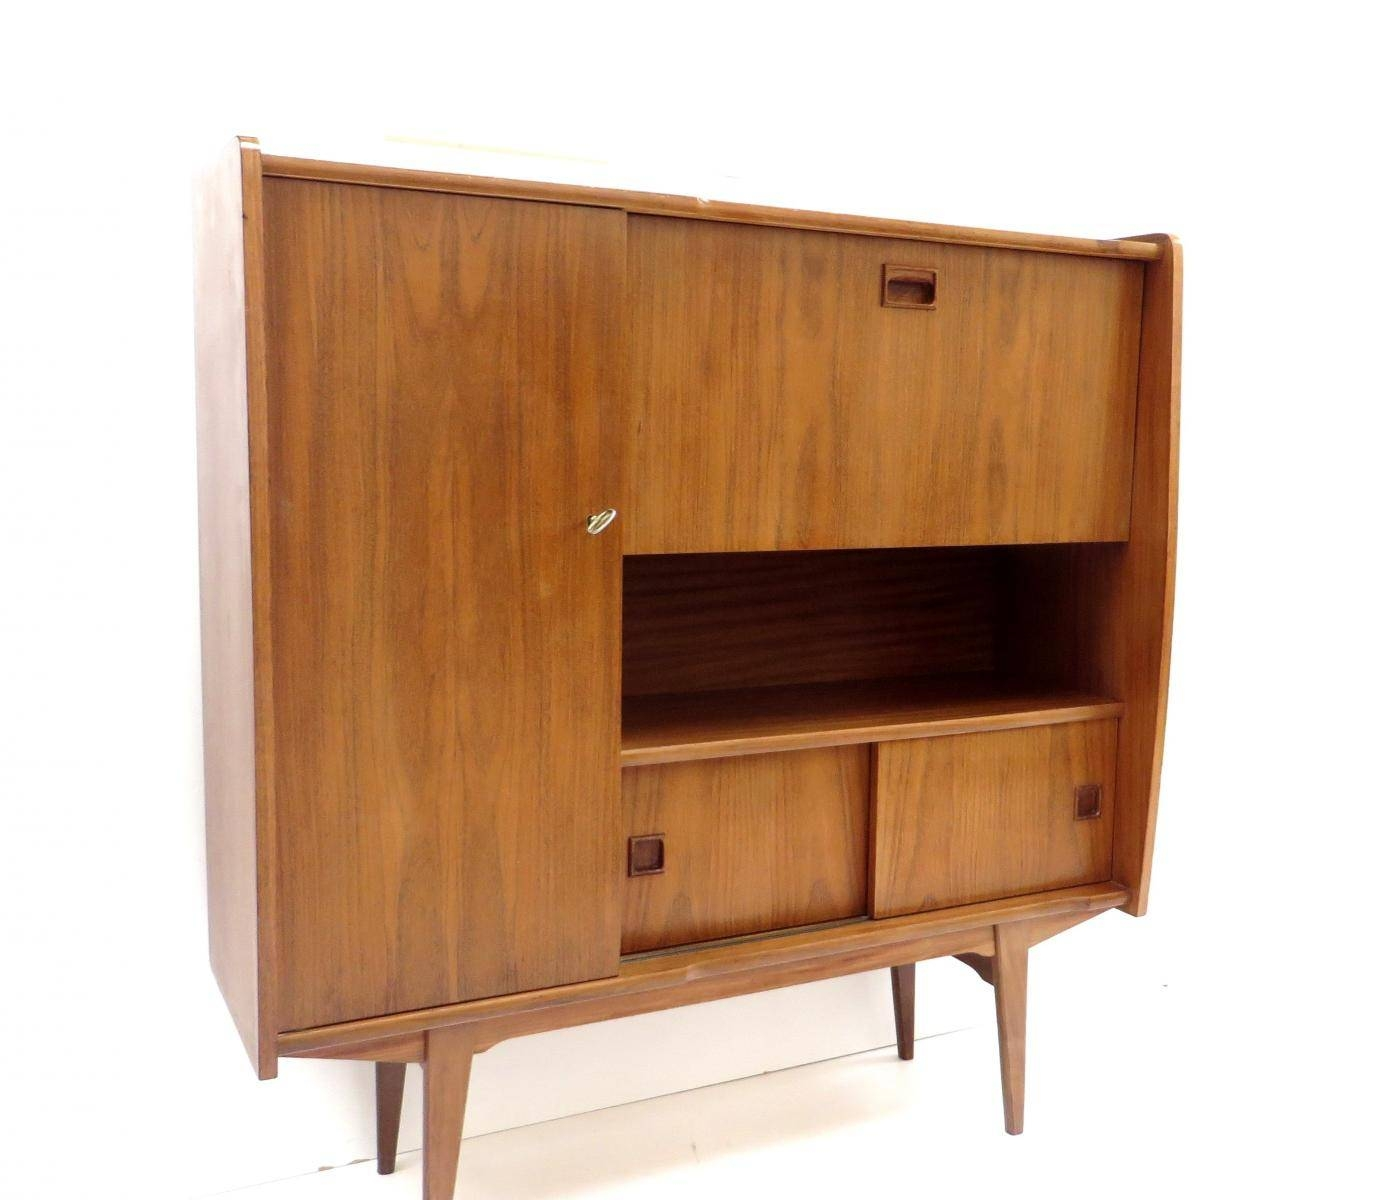 Vintage High Sideboard In Teak, 1960S For Sale At Pamono With High Sideboard (View 20 of 20)